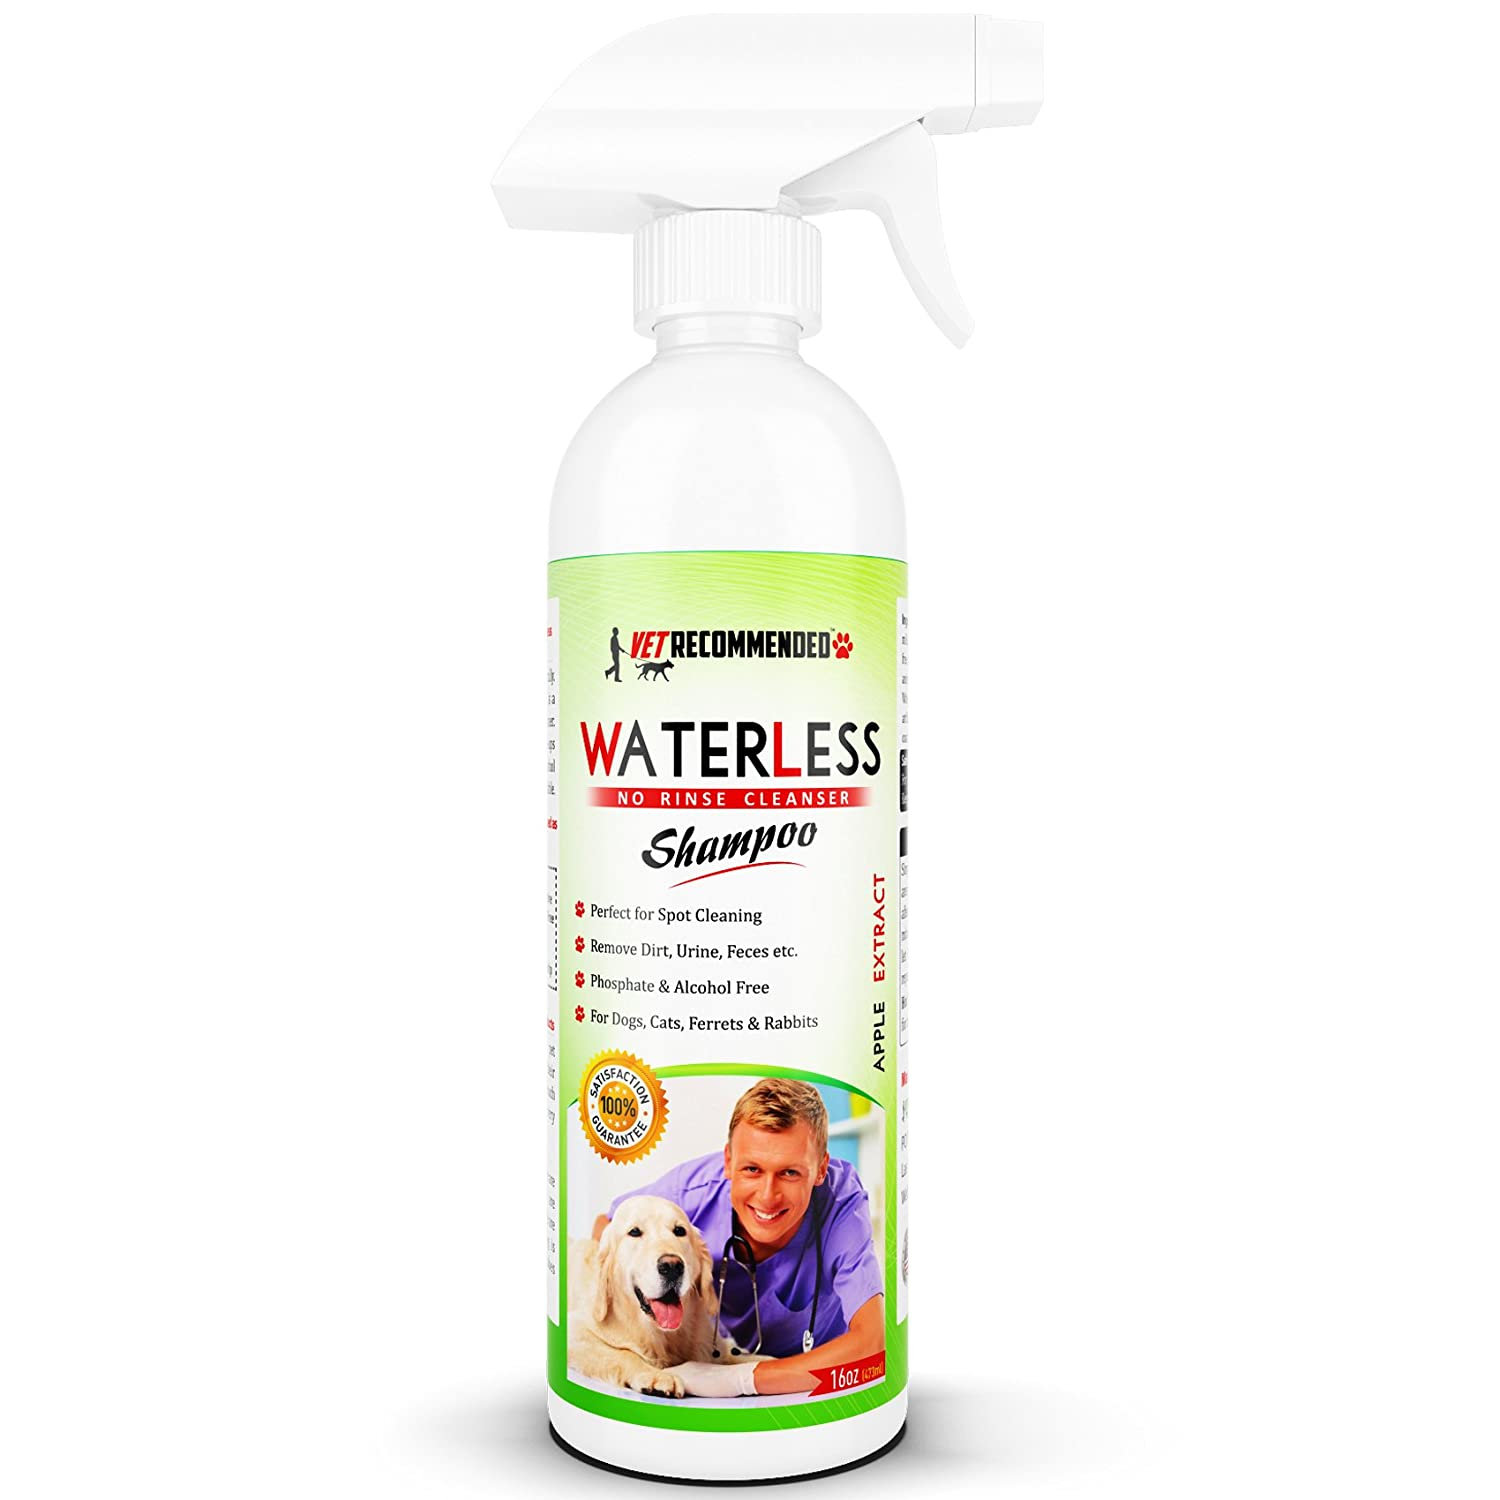 4. Vet Recommended - Waterless Dog Shampoo